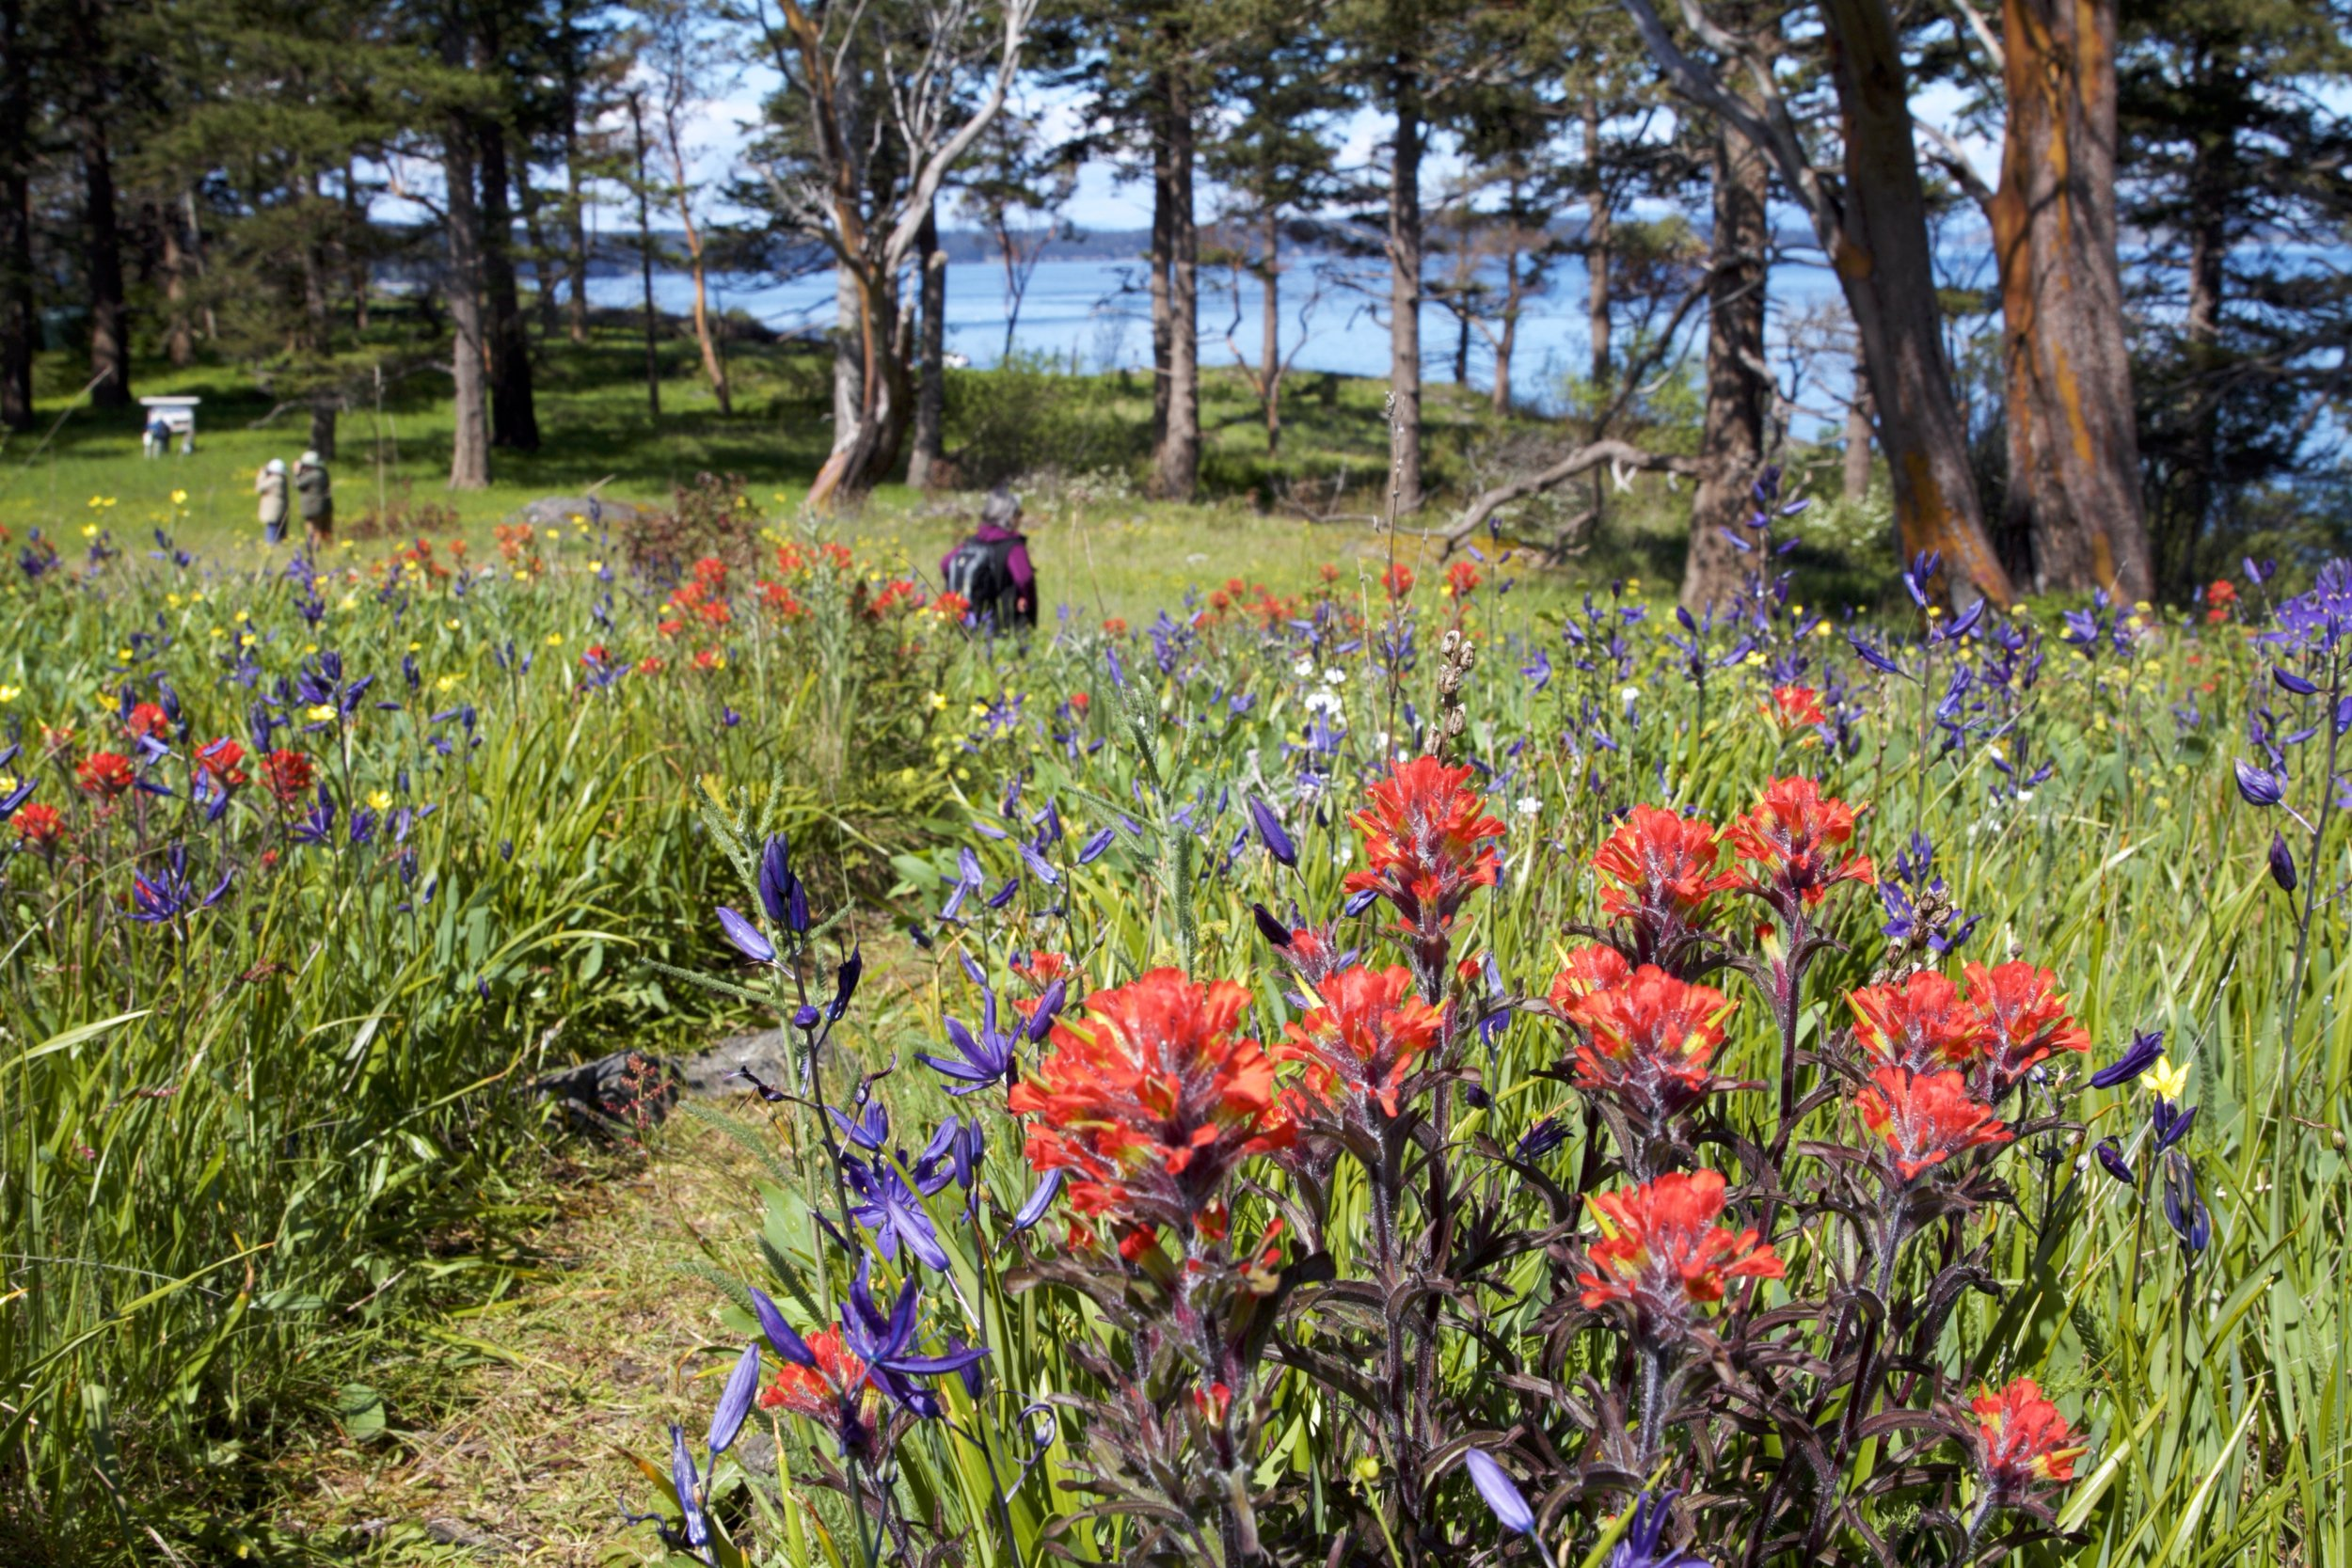 Blooming paintbrush and camas, along with buttercup in the background. Photo by Sean Galvin.